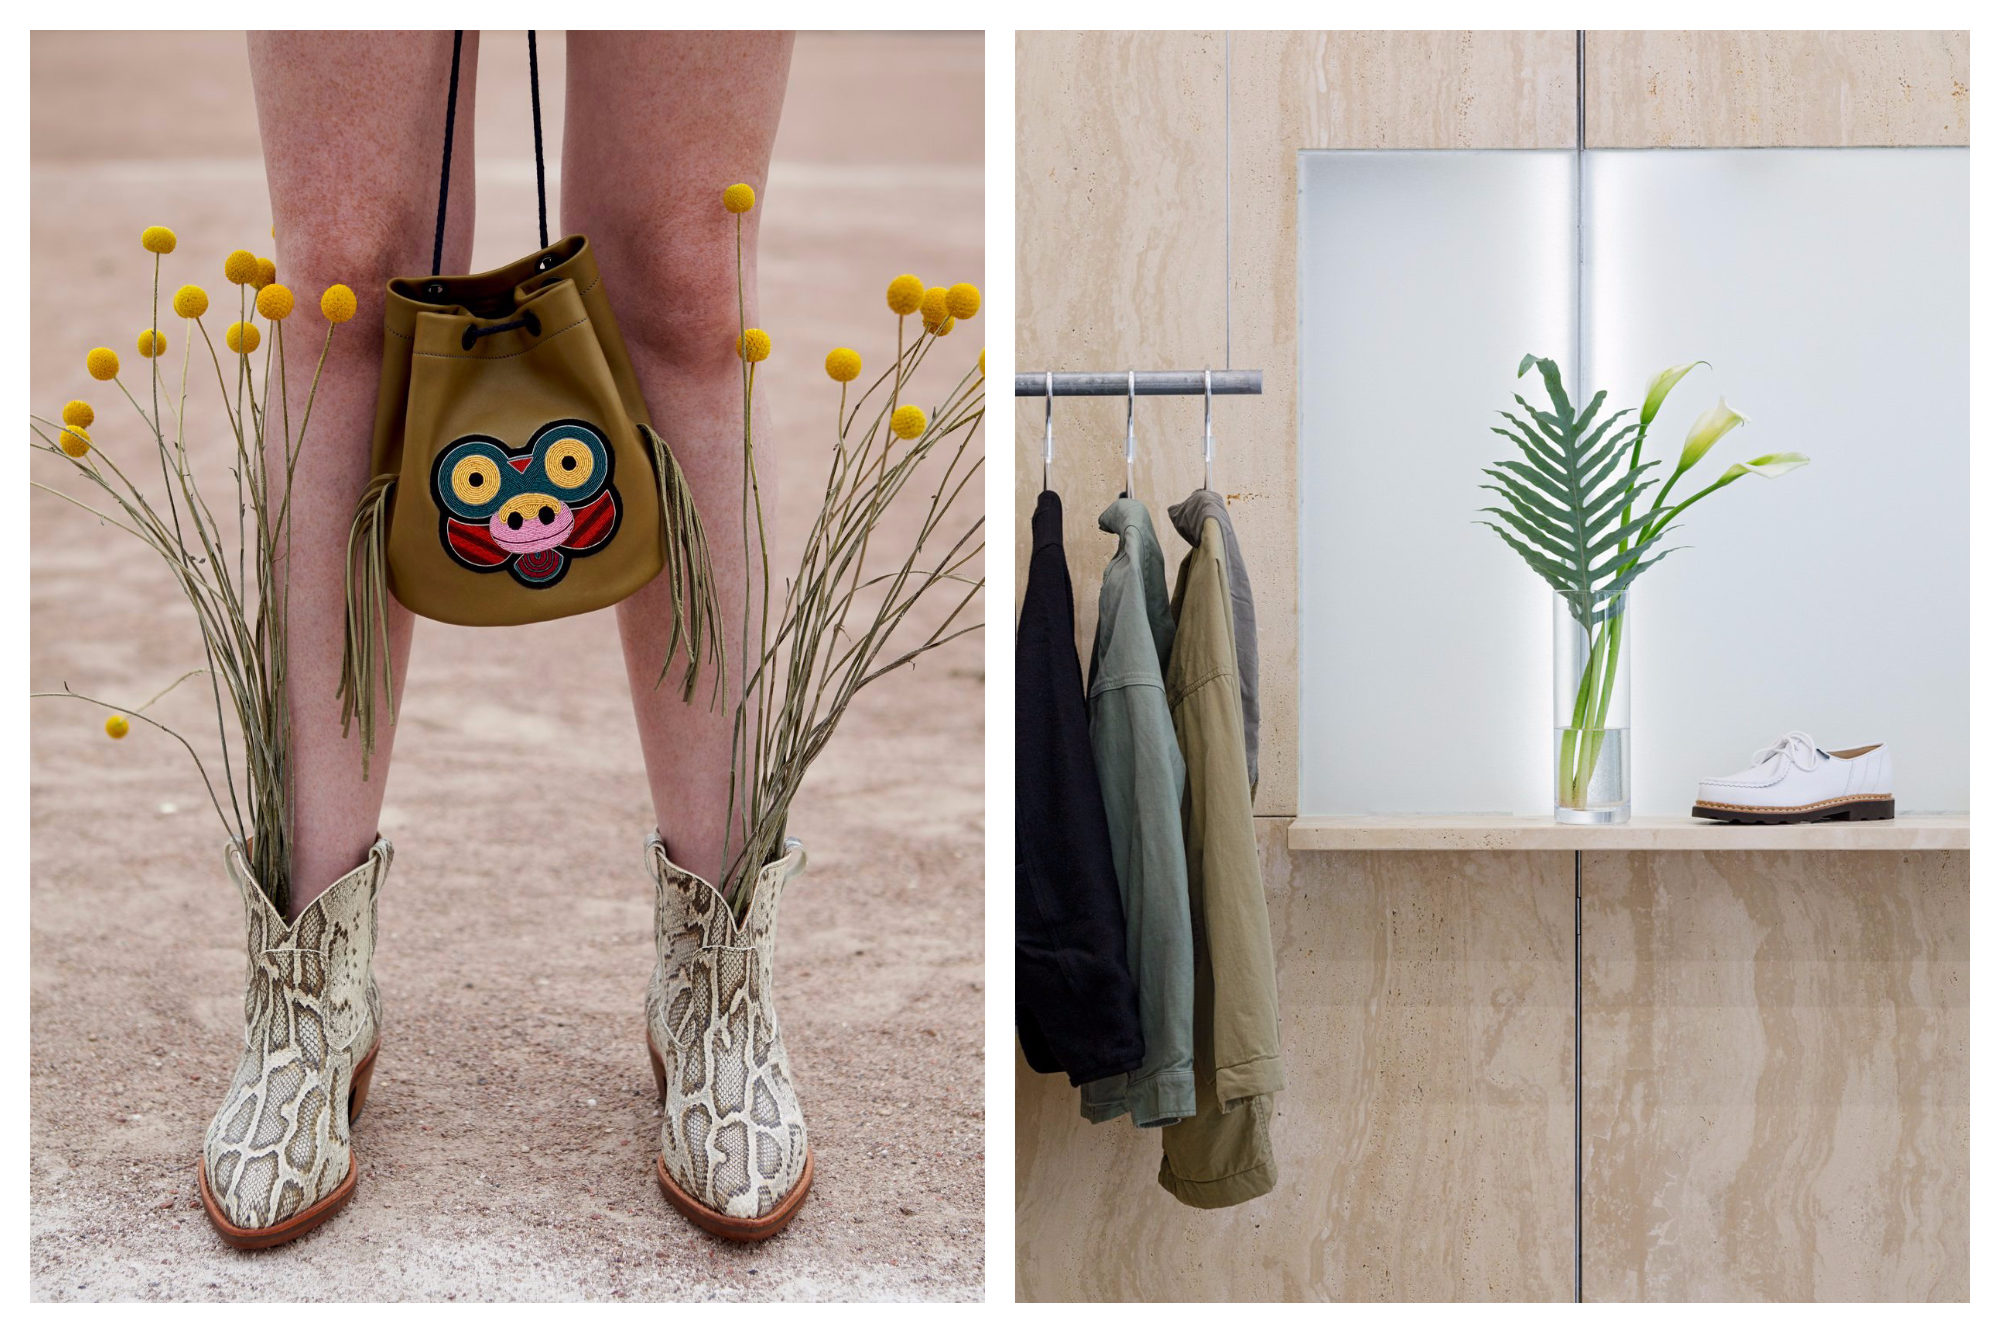 The legs of a woman wearing snaskin boots with dried yellow flowers planted inside them, carrying a bag between her knees (left) by Macon & Lesquoy on the Canal Saint Martin in Paris. A selection of jackets and shoes arranged inside the pared-down The Next Door store (right).